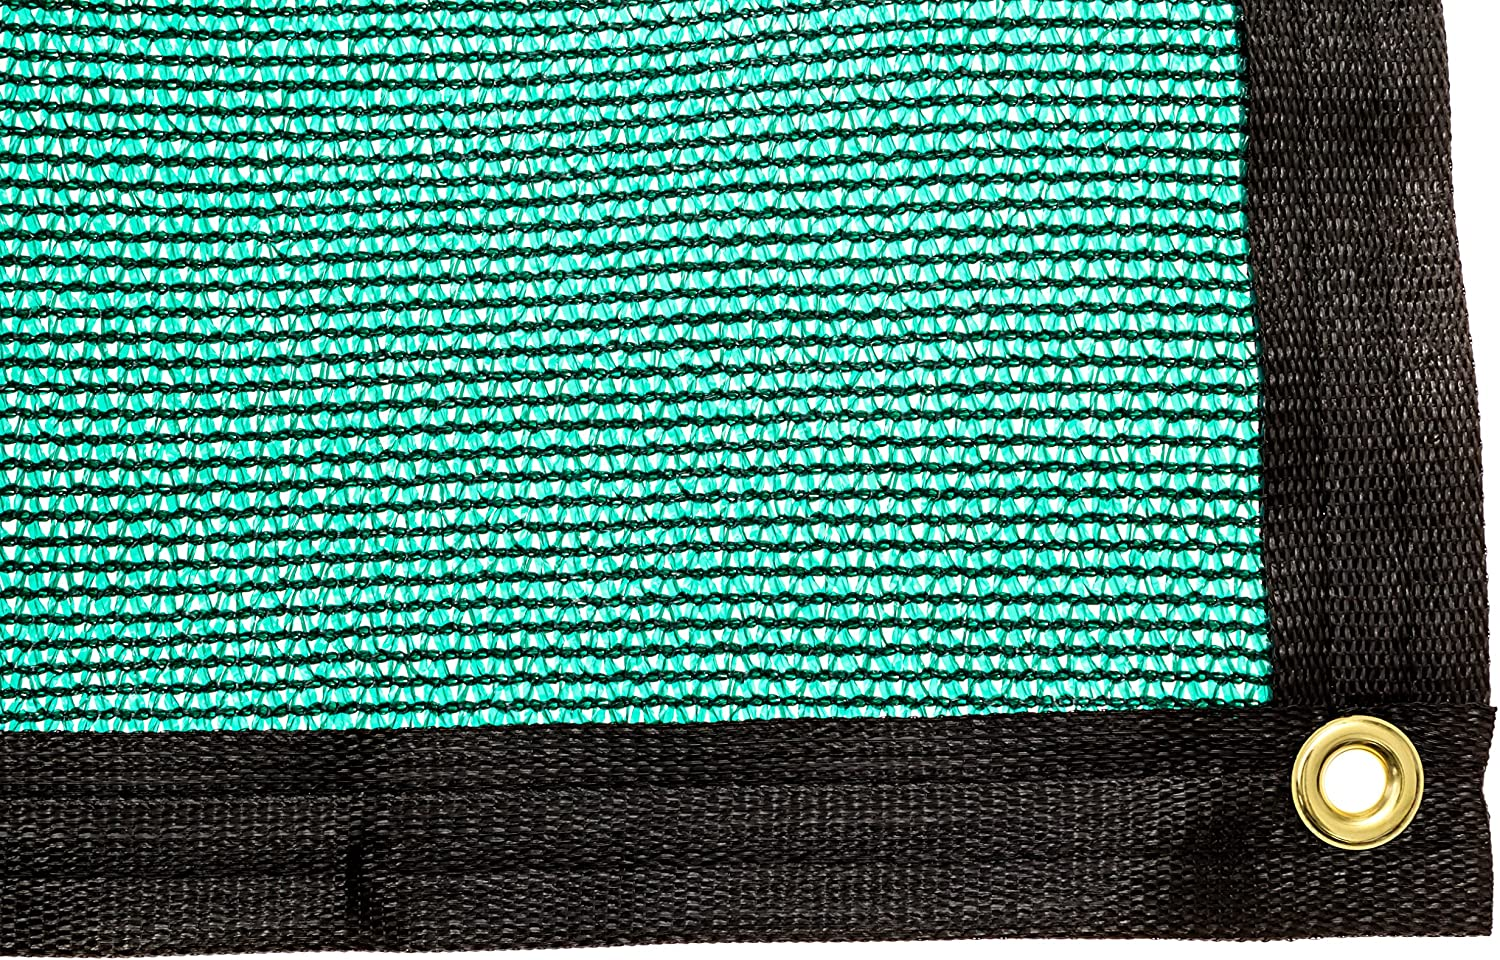 Be Cool Solutions 70 Green Outdoor Sun Shade Canopy UV Protection Shade Cloth Lightweight, Easy Setup Mesh Canopy Cover with Grommets Sturdy, Durable Shade Fabric for Garden, Patio Porch 20 x24